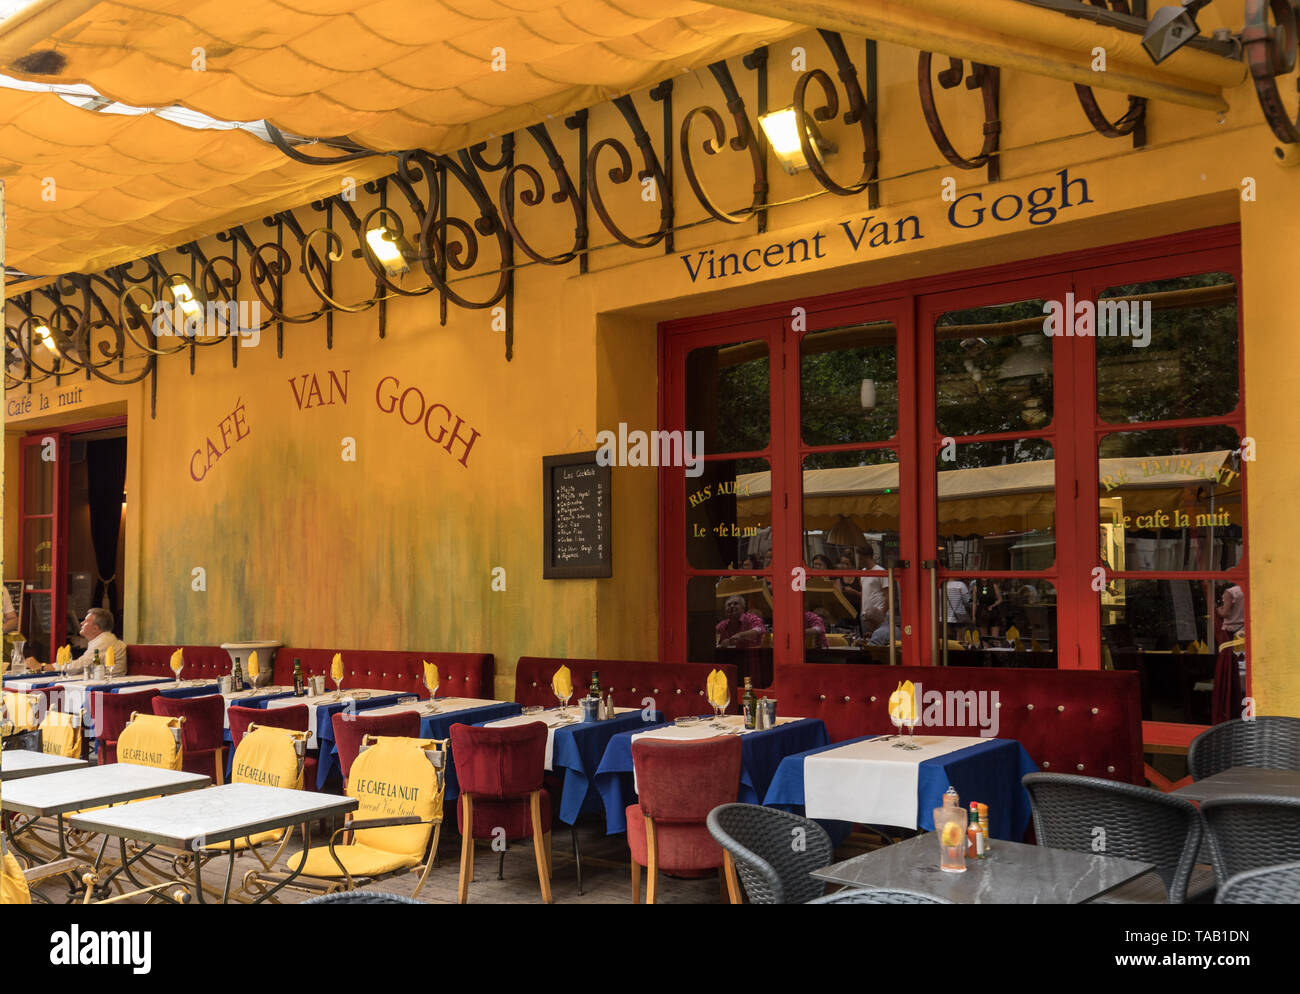 Arles, France - June 24, 2017: Cafe Van Gogh at Place du Forum in Arles. Provence, France. This is the same Cafe Terrace that Vincent van Gogh painted Stock Photo